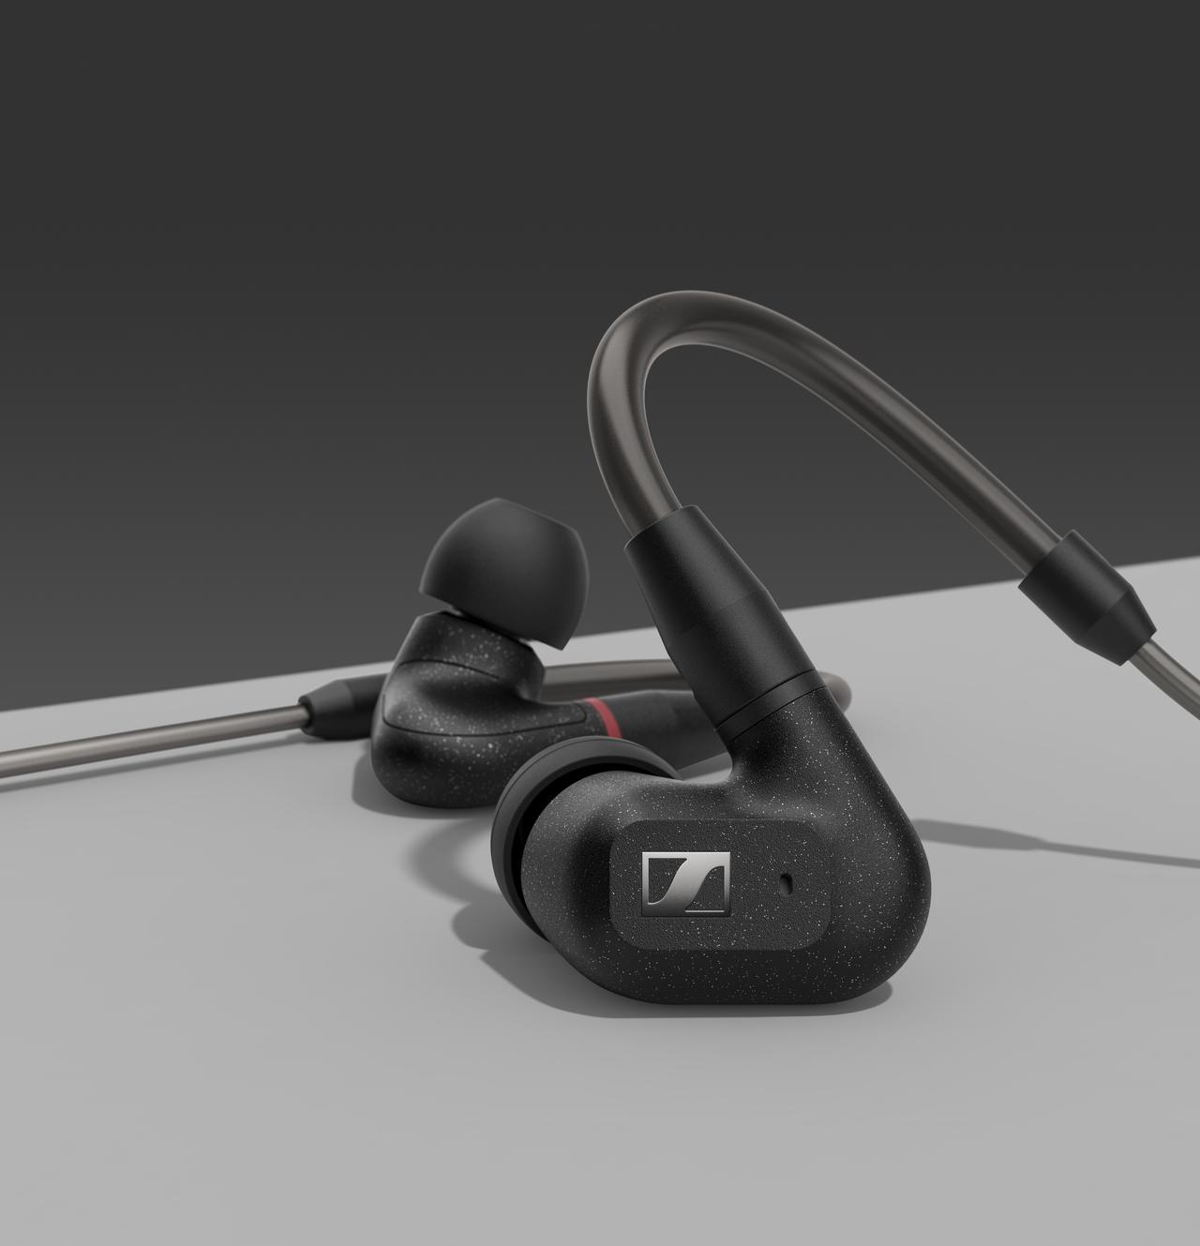 The new IE 300 features a refined version of Sennheiser's acclaimed 7mm Extra Wide Band (XWB) transducer for superior sound quality